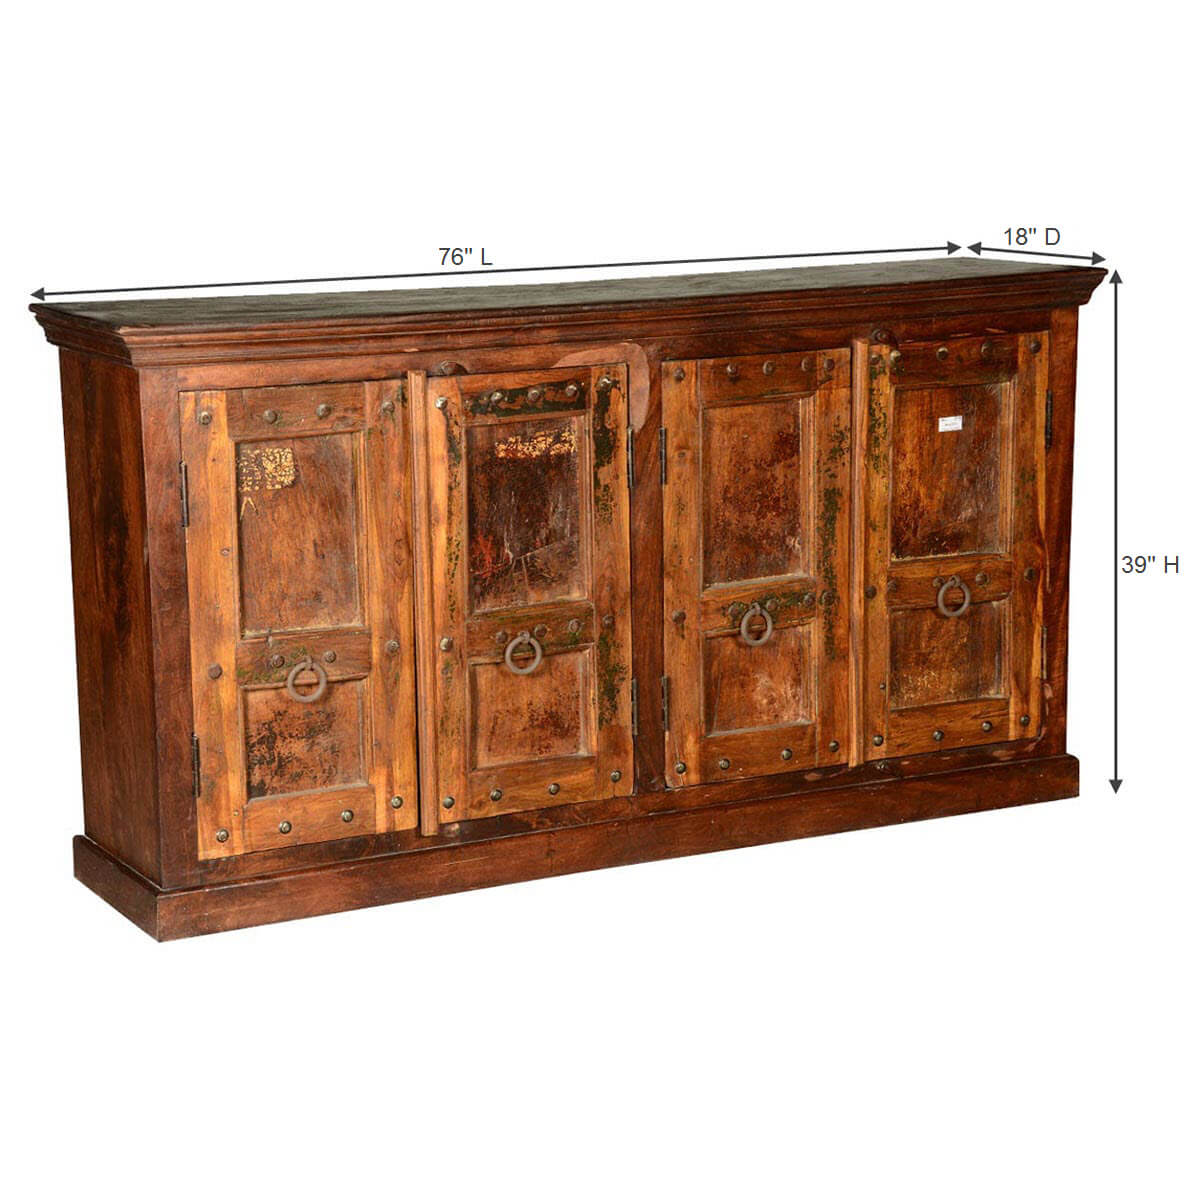 Rustic Gothic Traditions Reclaimed Wood Sideboard Cabinet : 68192 from www.sierralivingconcepts.com size 1200 x 1200 jpeg 185kB